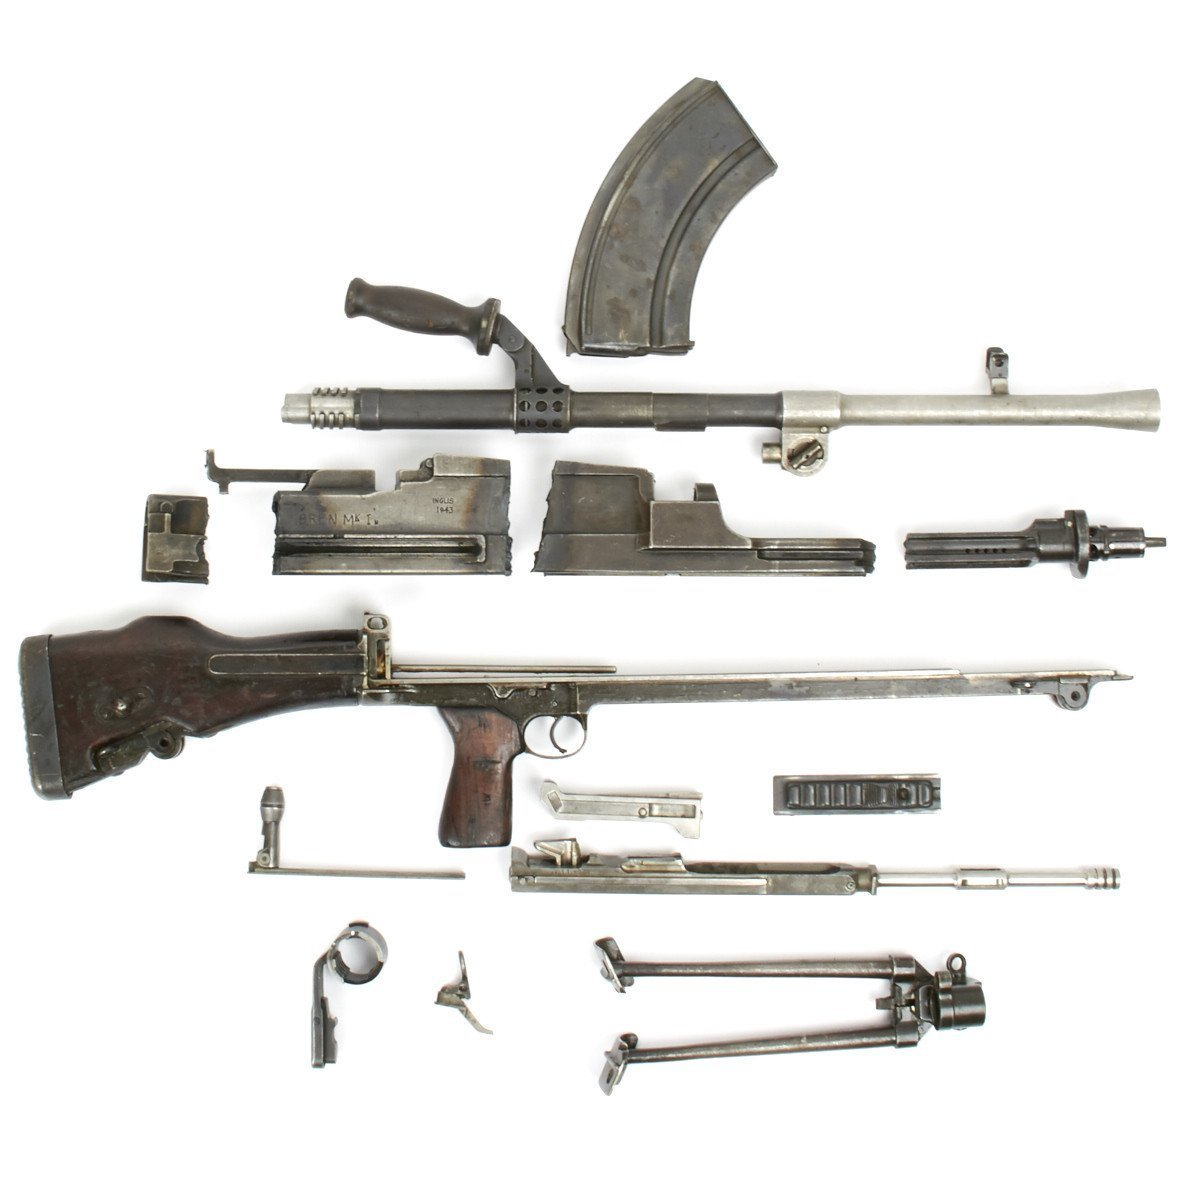 Original Machine Gun Part Sets